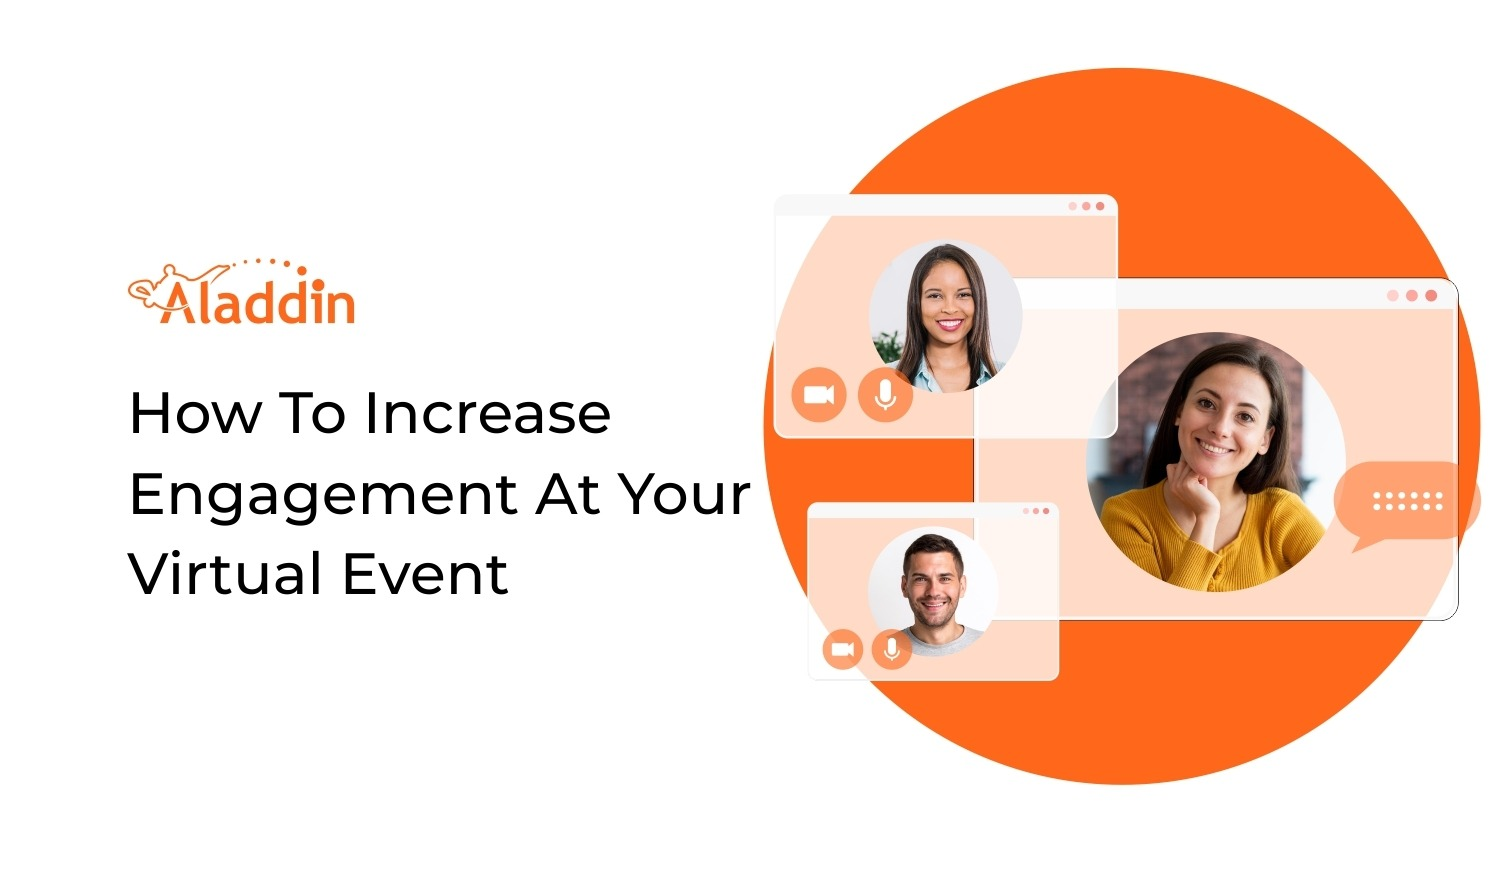 How To Increase Engagement At Your Virtual Event